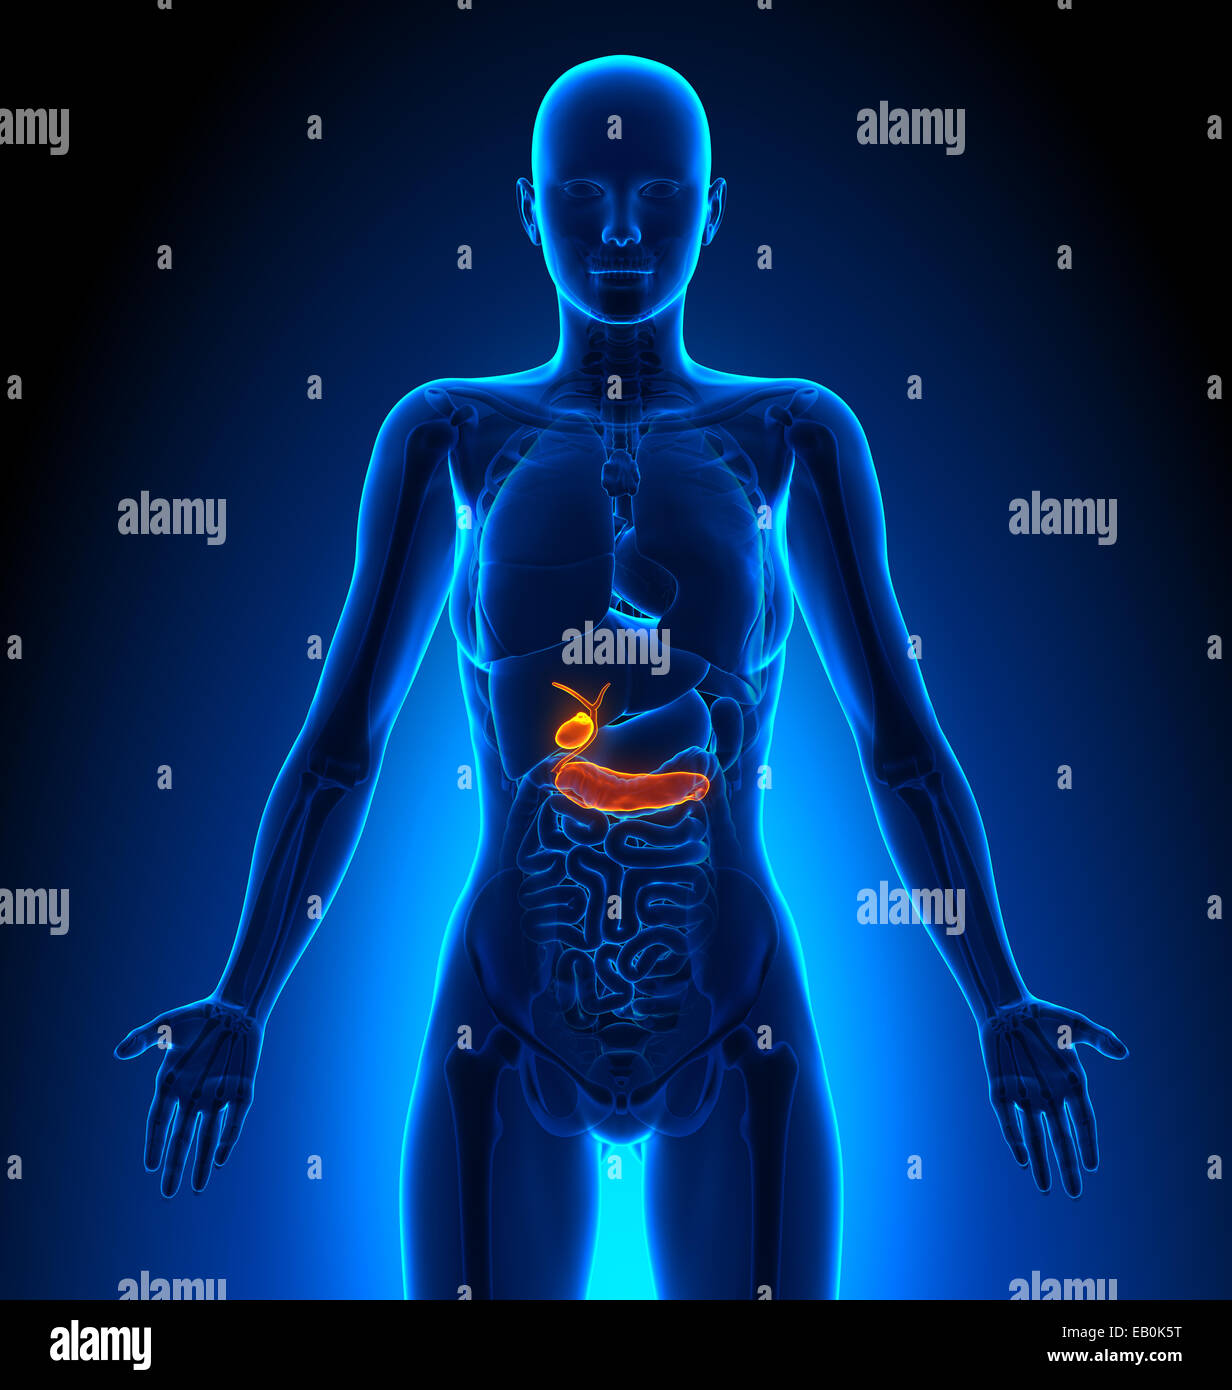 Gallbladder / Pancreas - Female Organs - Human Anatomy Stock Photo ...